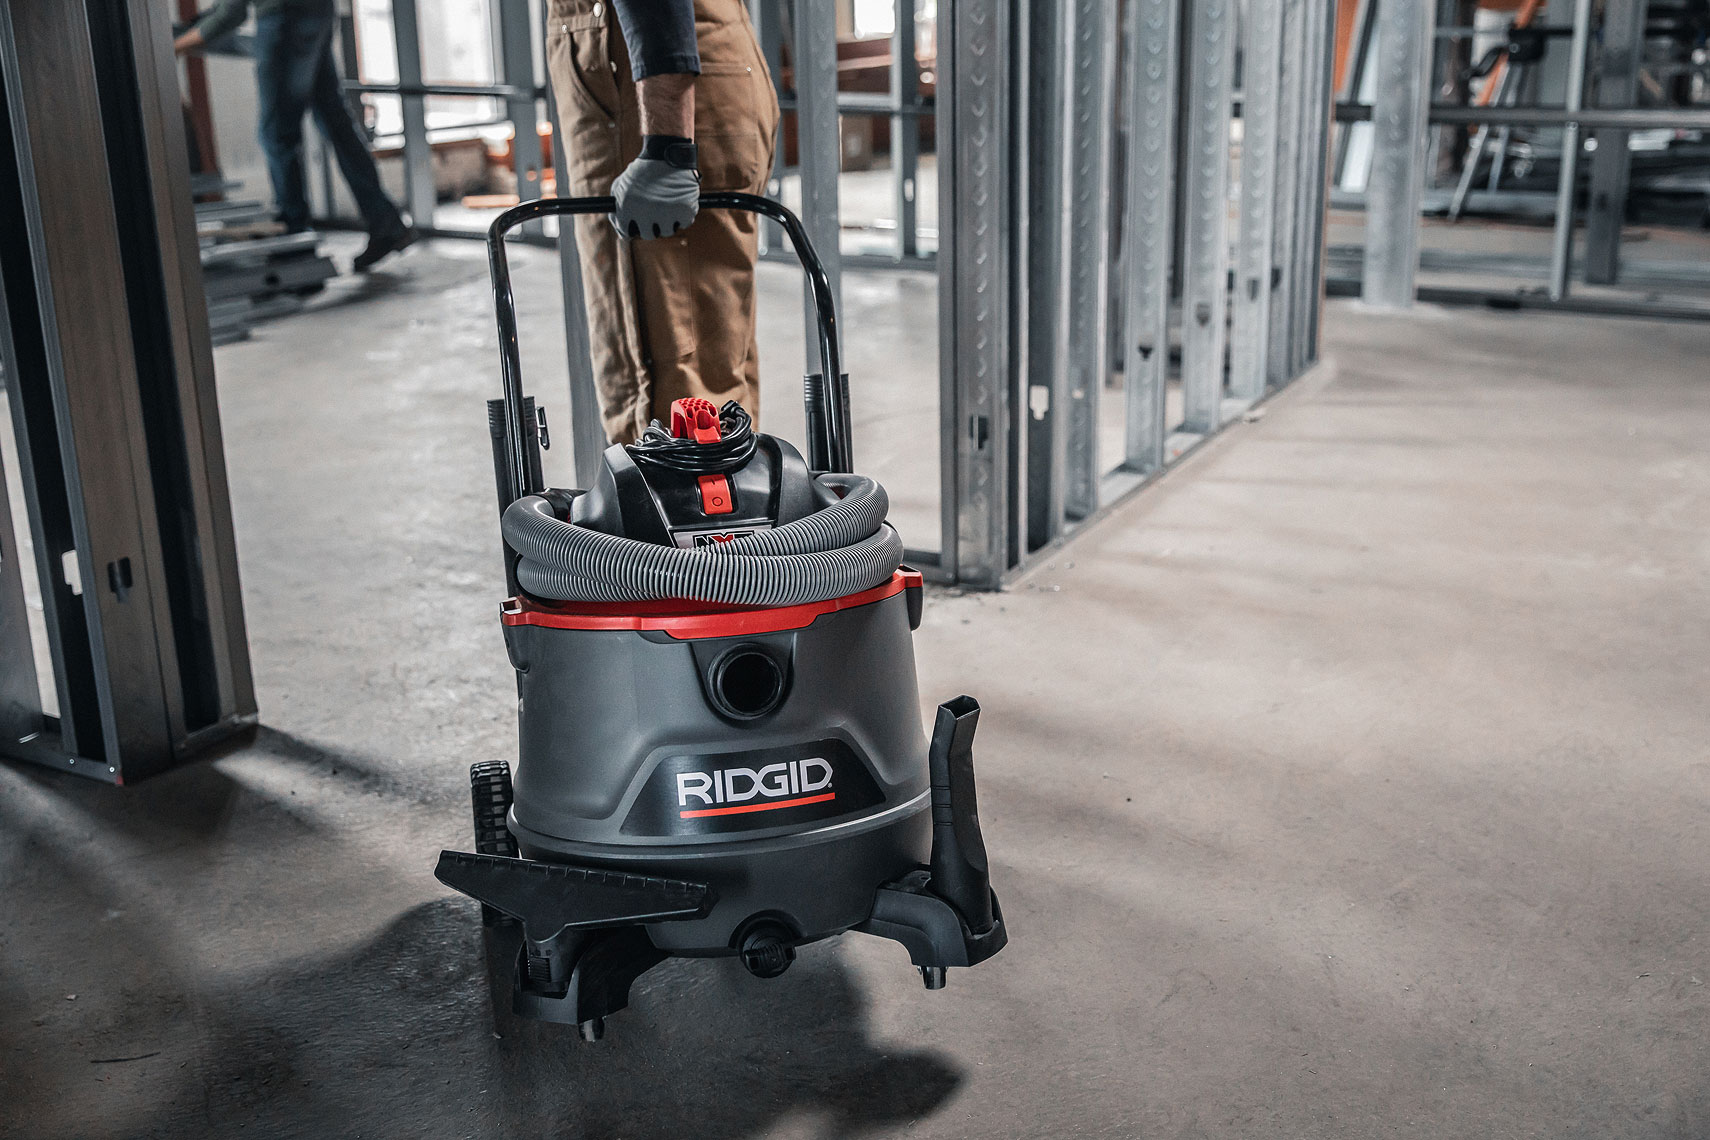 RIDGID RED RT1400 Wet/Dry Vacuum | John Fedele Product Photography